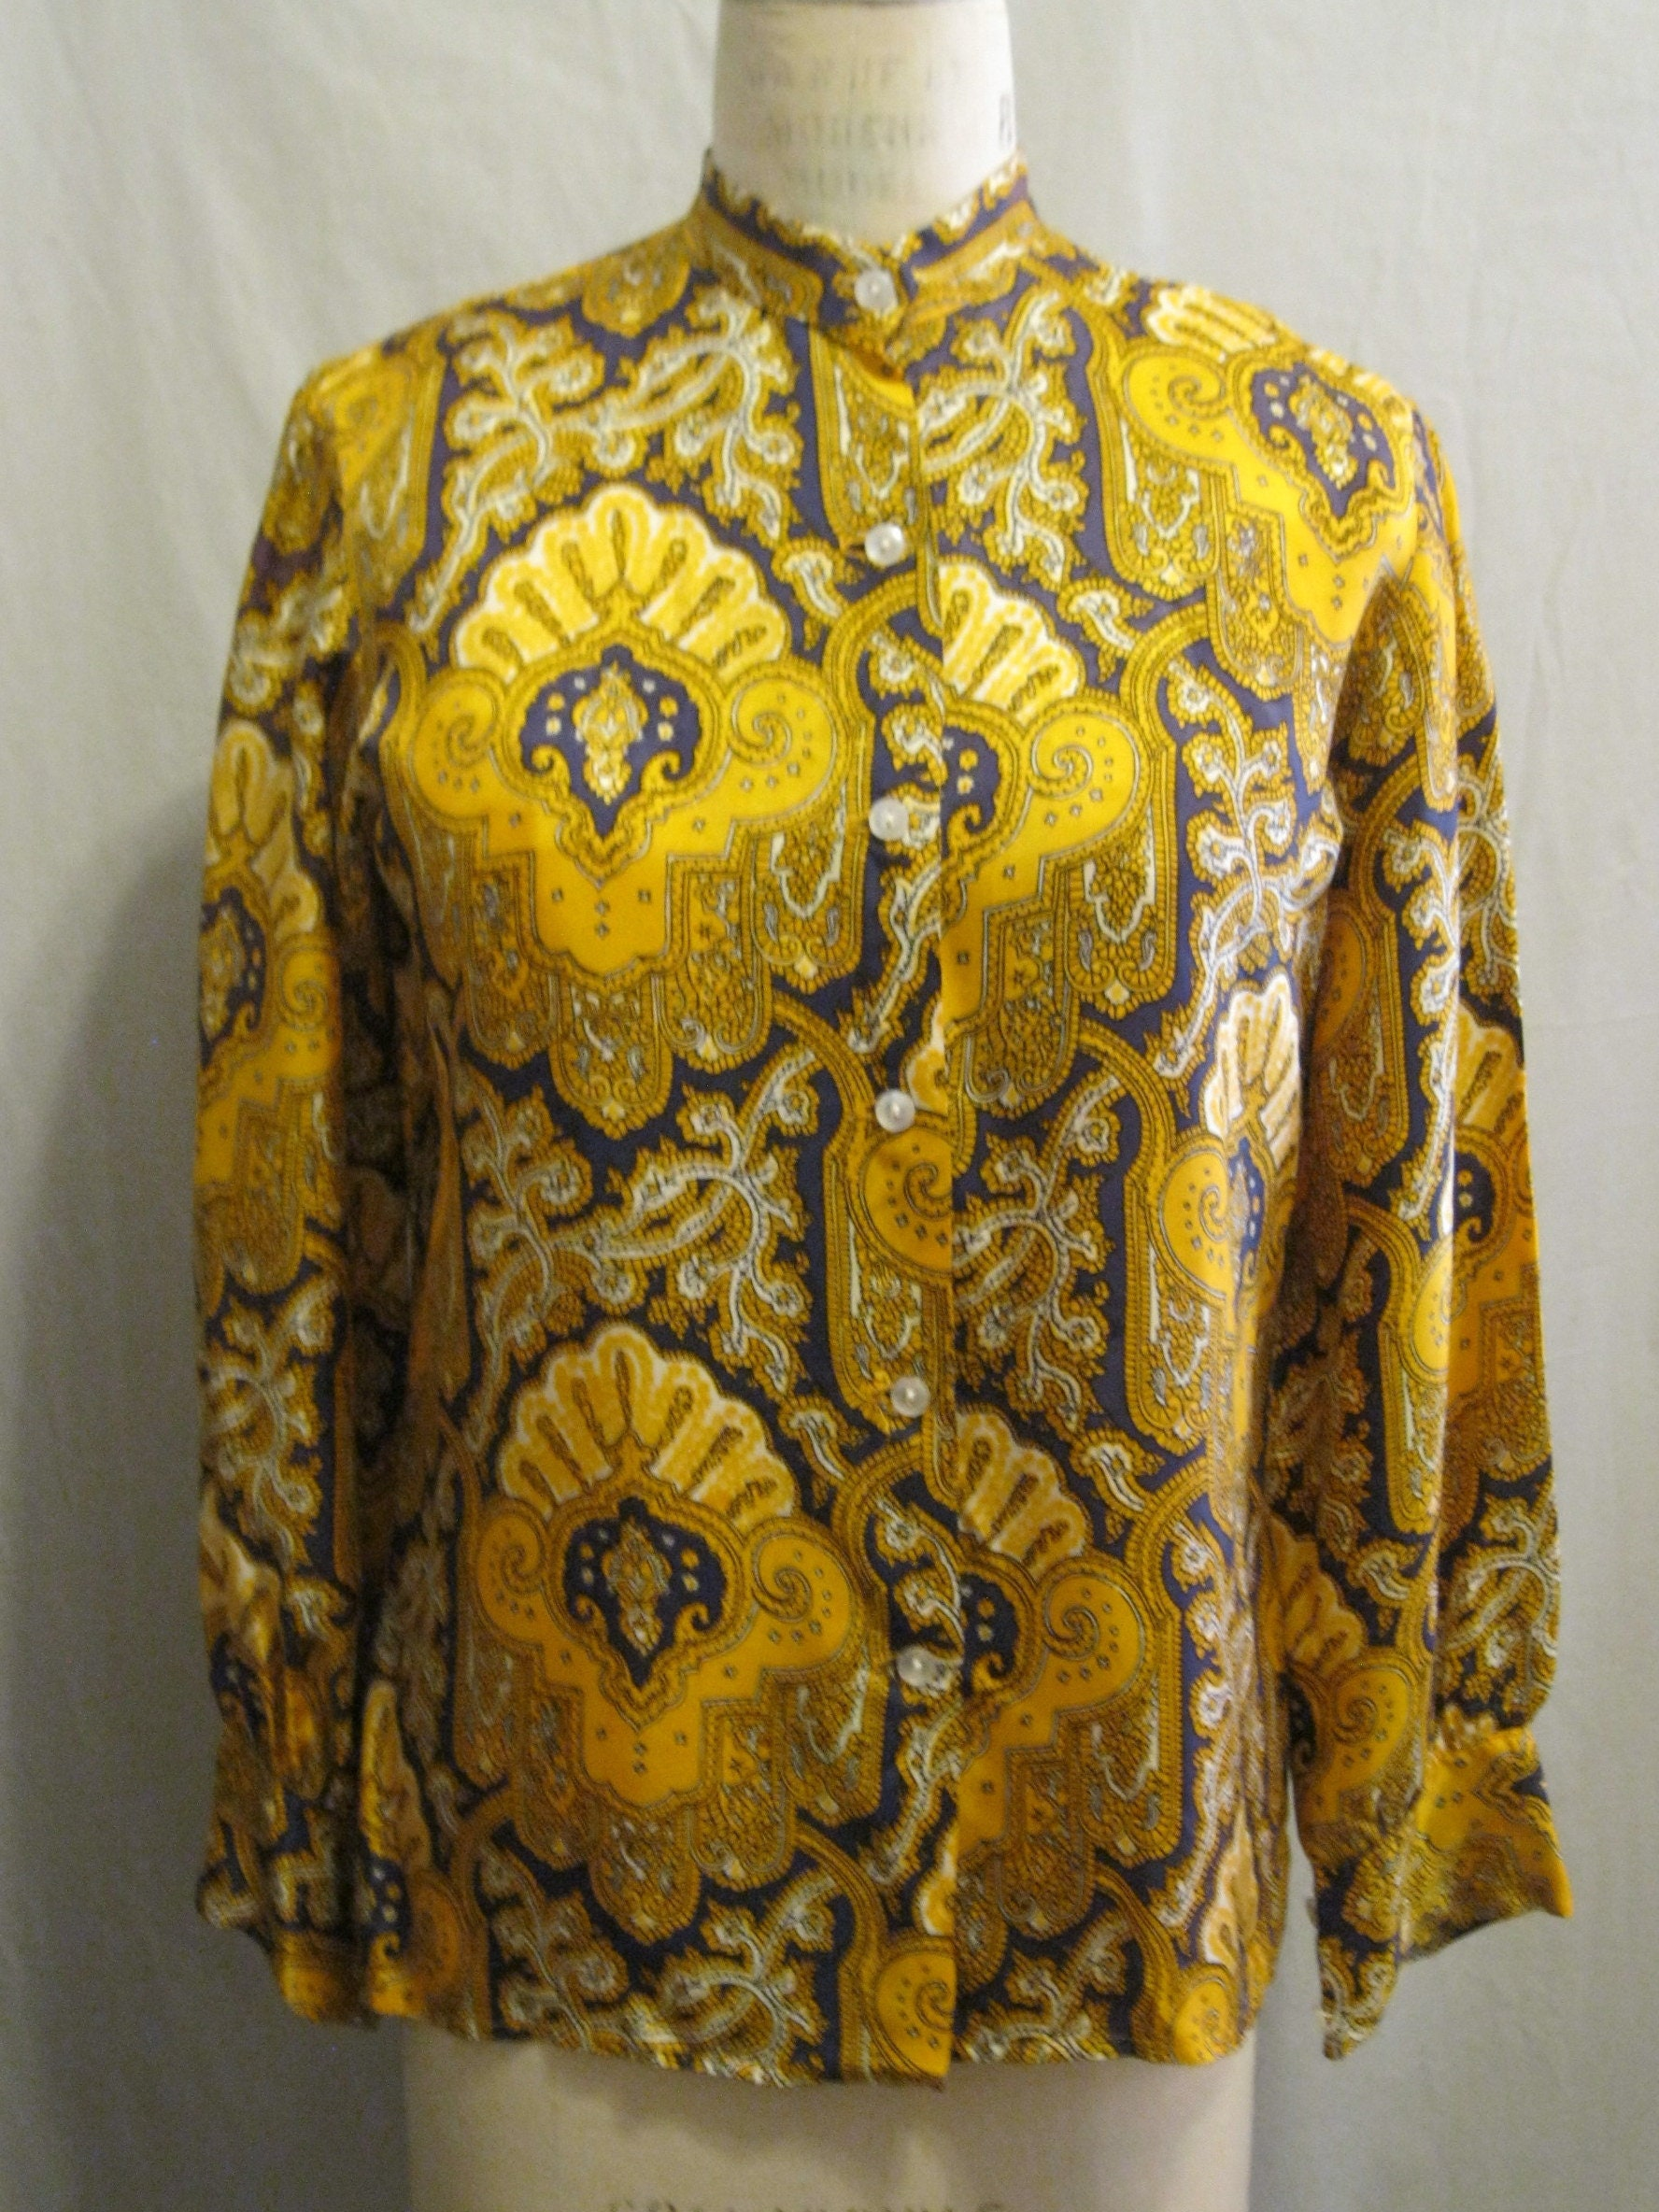 Vintage Scarf Styles -1920s to 1960s Vintage 60S 70S Paisley Print Blouse Acetate Twill Classic Secretary Neckband Mod Style Bust 40 $55.00 AT vintagedancer.com